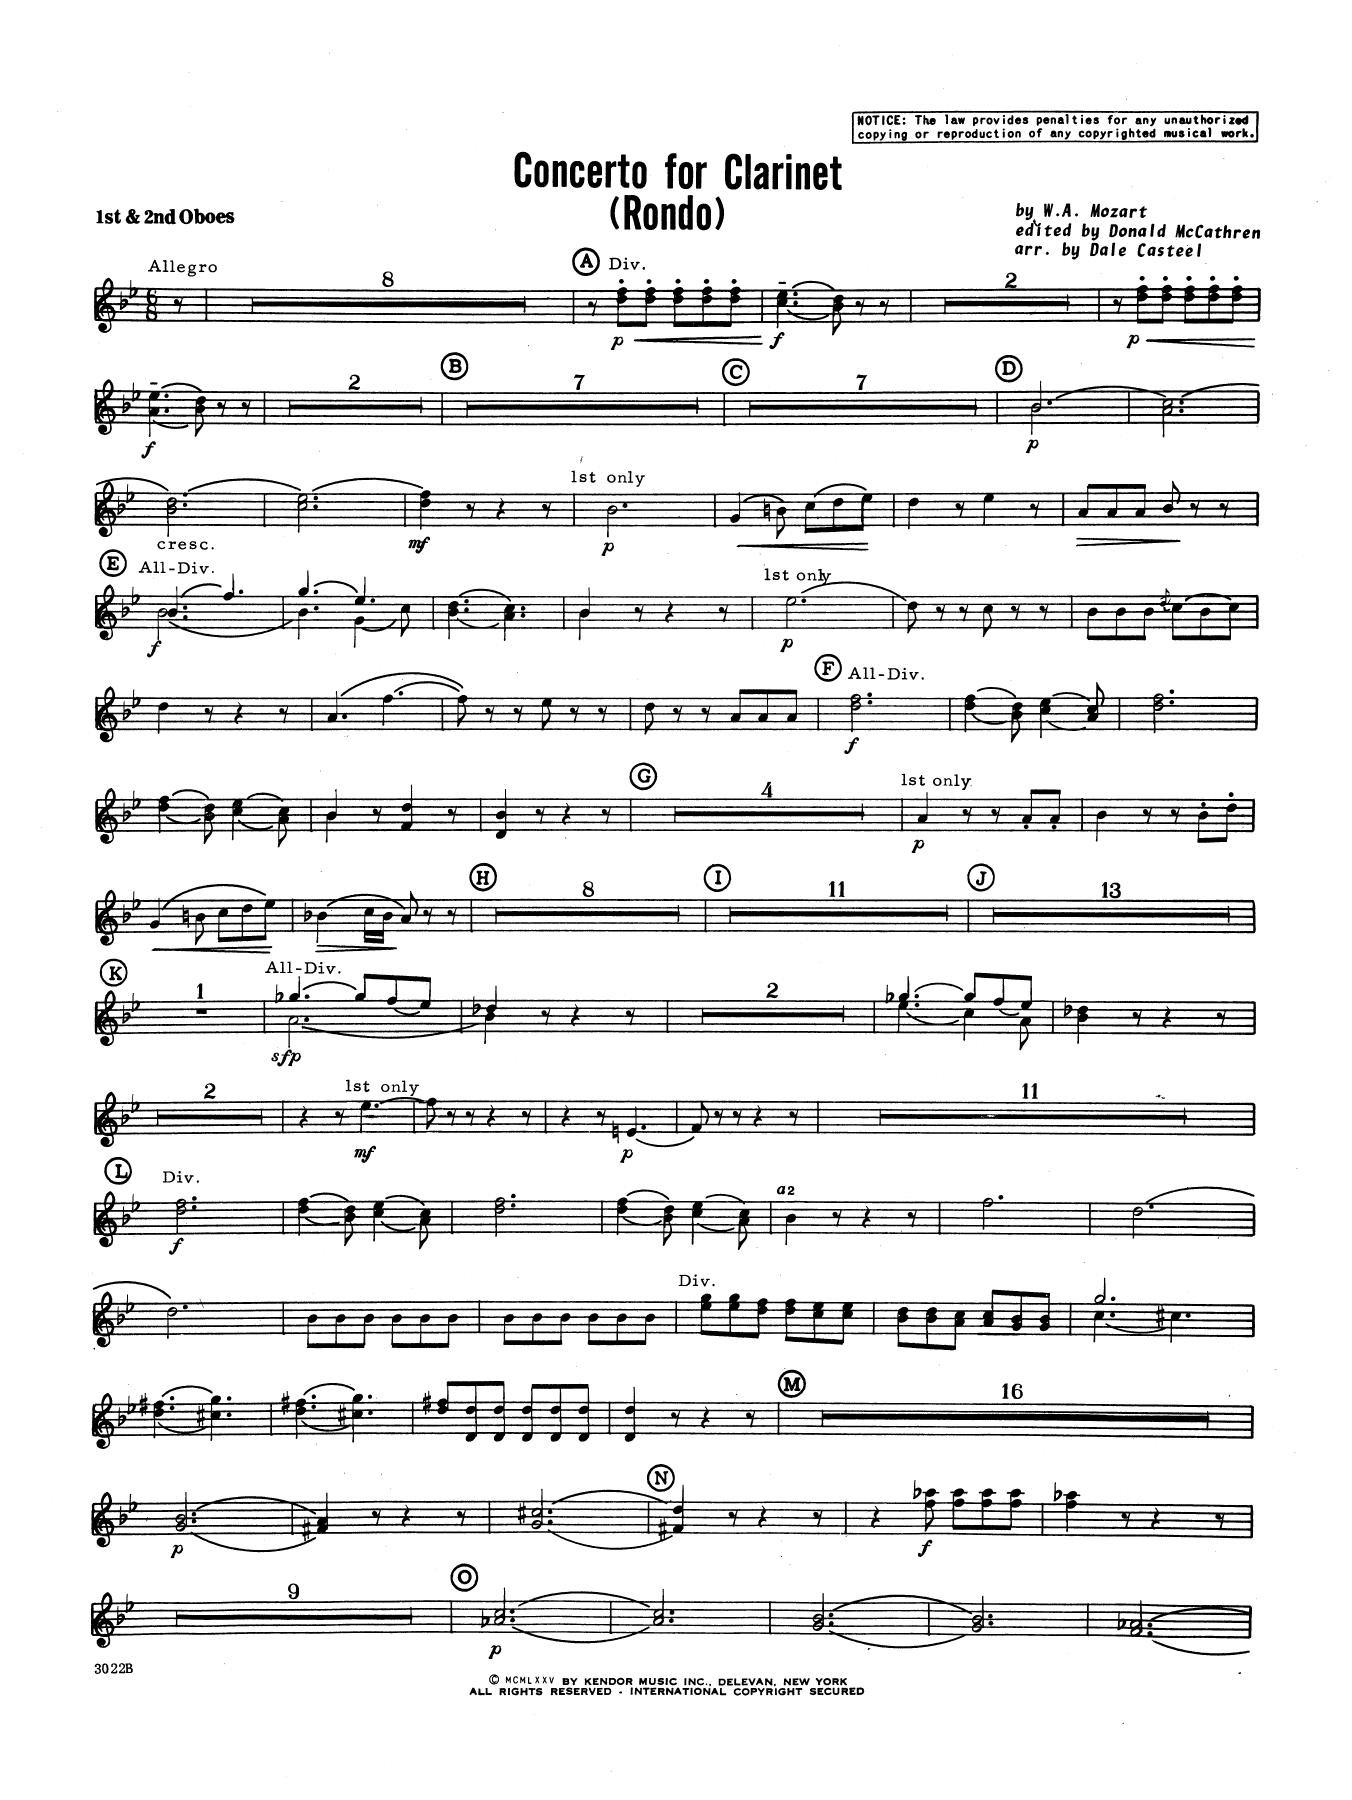 Donald McCathren and Dale Casteel Concerto For Clarinet - Rondo (3rd Movement) - K.622 - Oboe sheet music notes printable PDF score